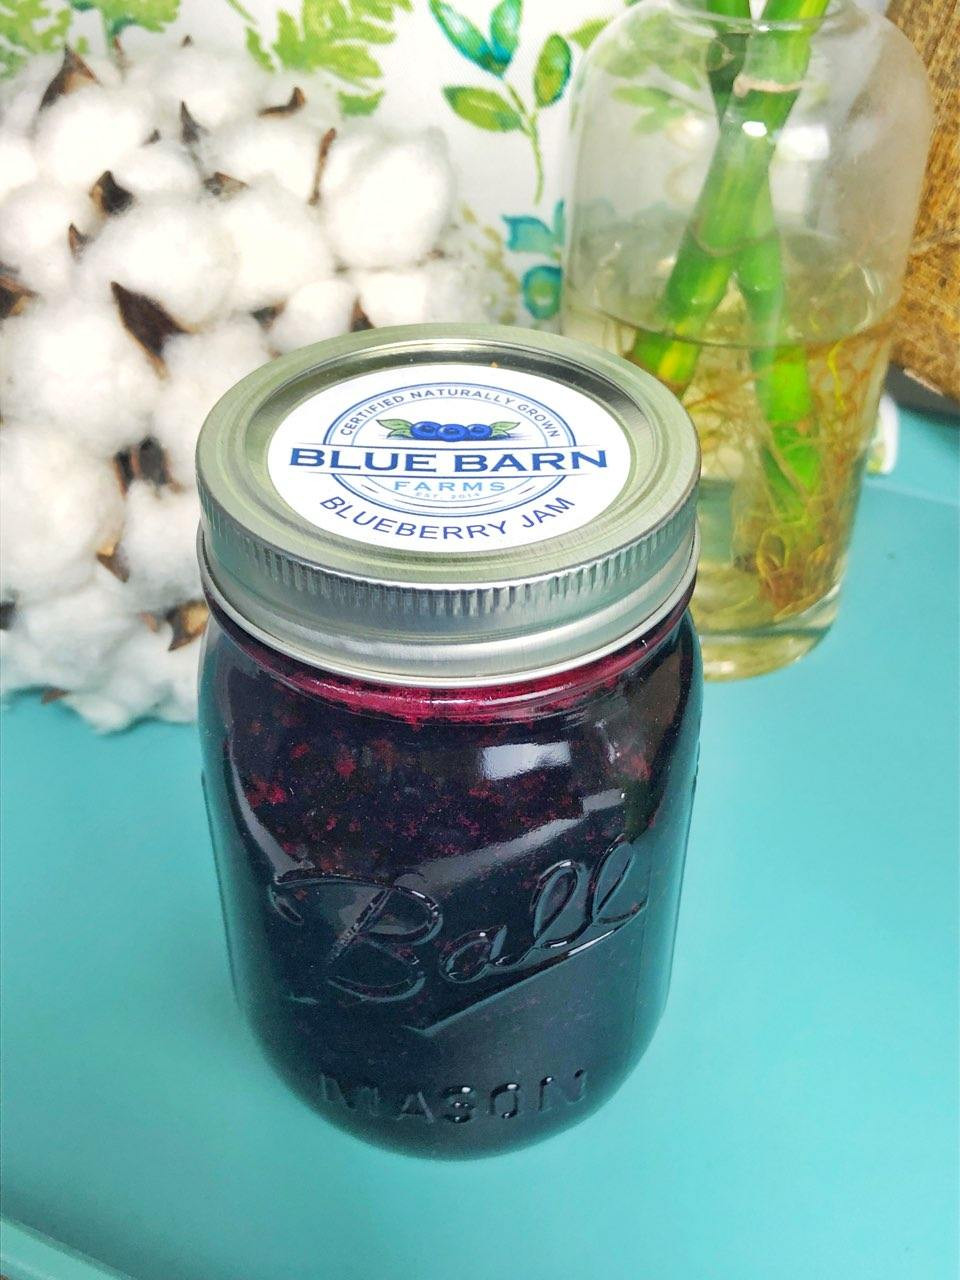 BBF Blueberry Pie filling